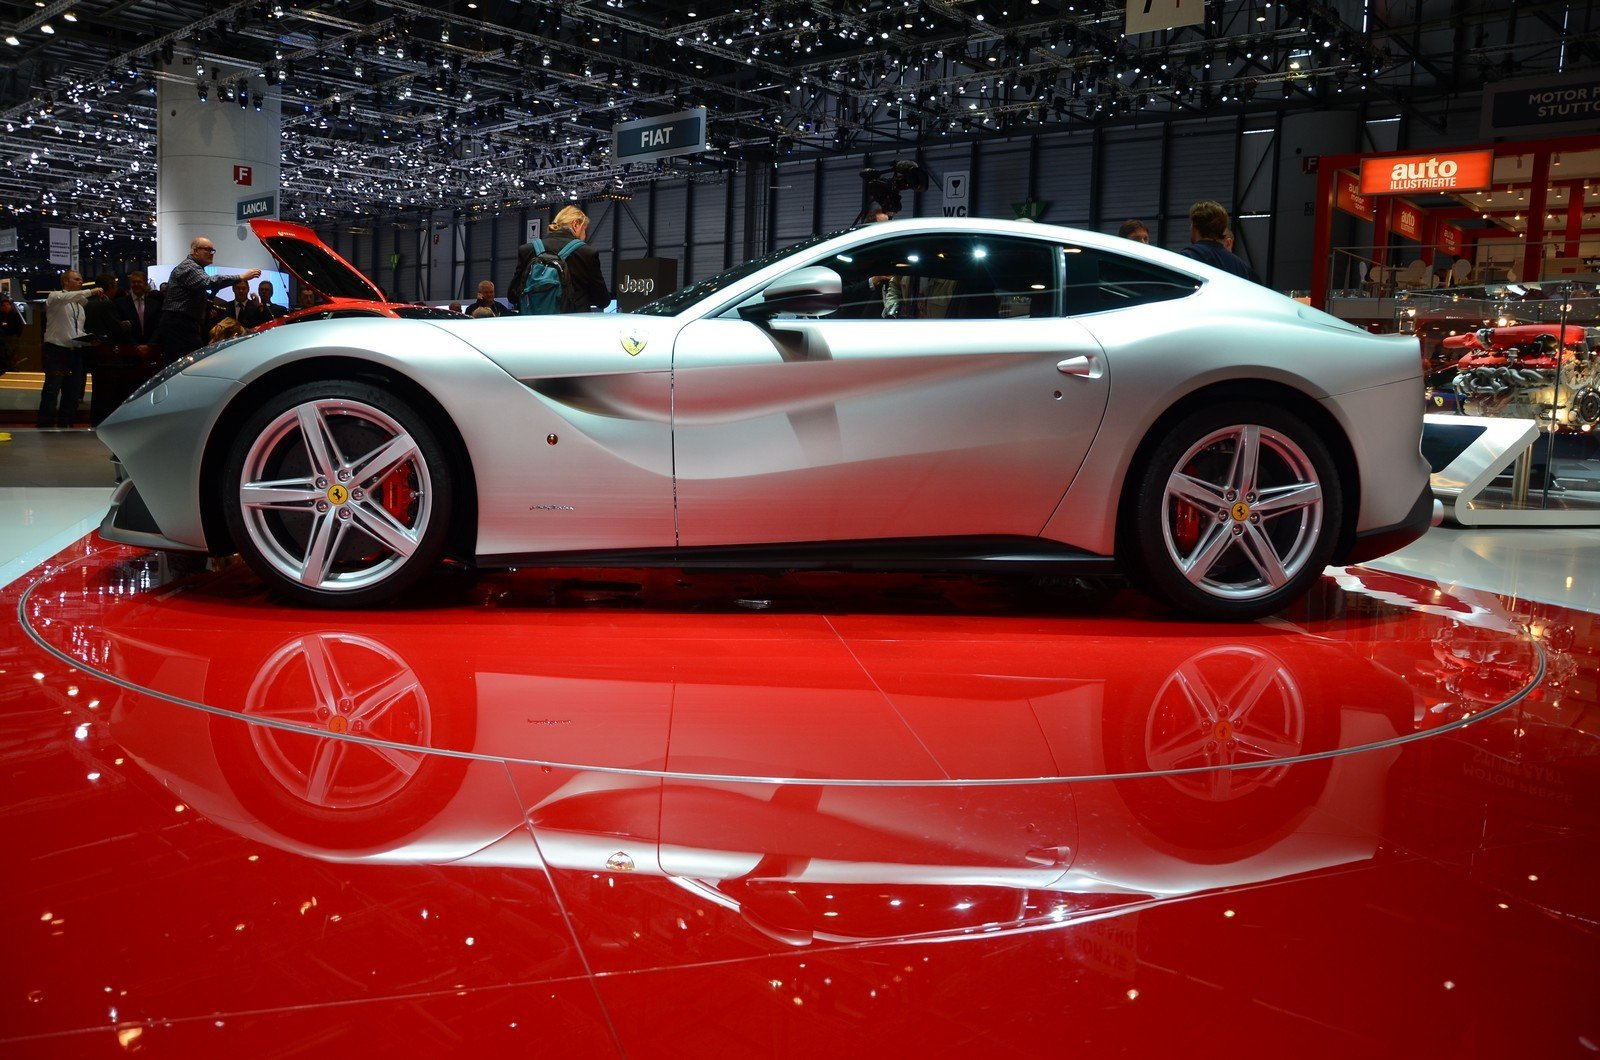 2013 ferrari f12 berlinetta picture 441797 car review top speed. Black Bedroom Furniture Sets. Home Design Ideas